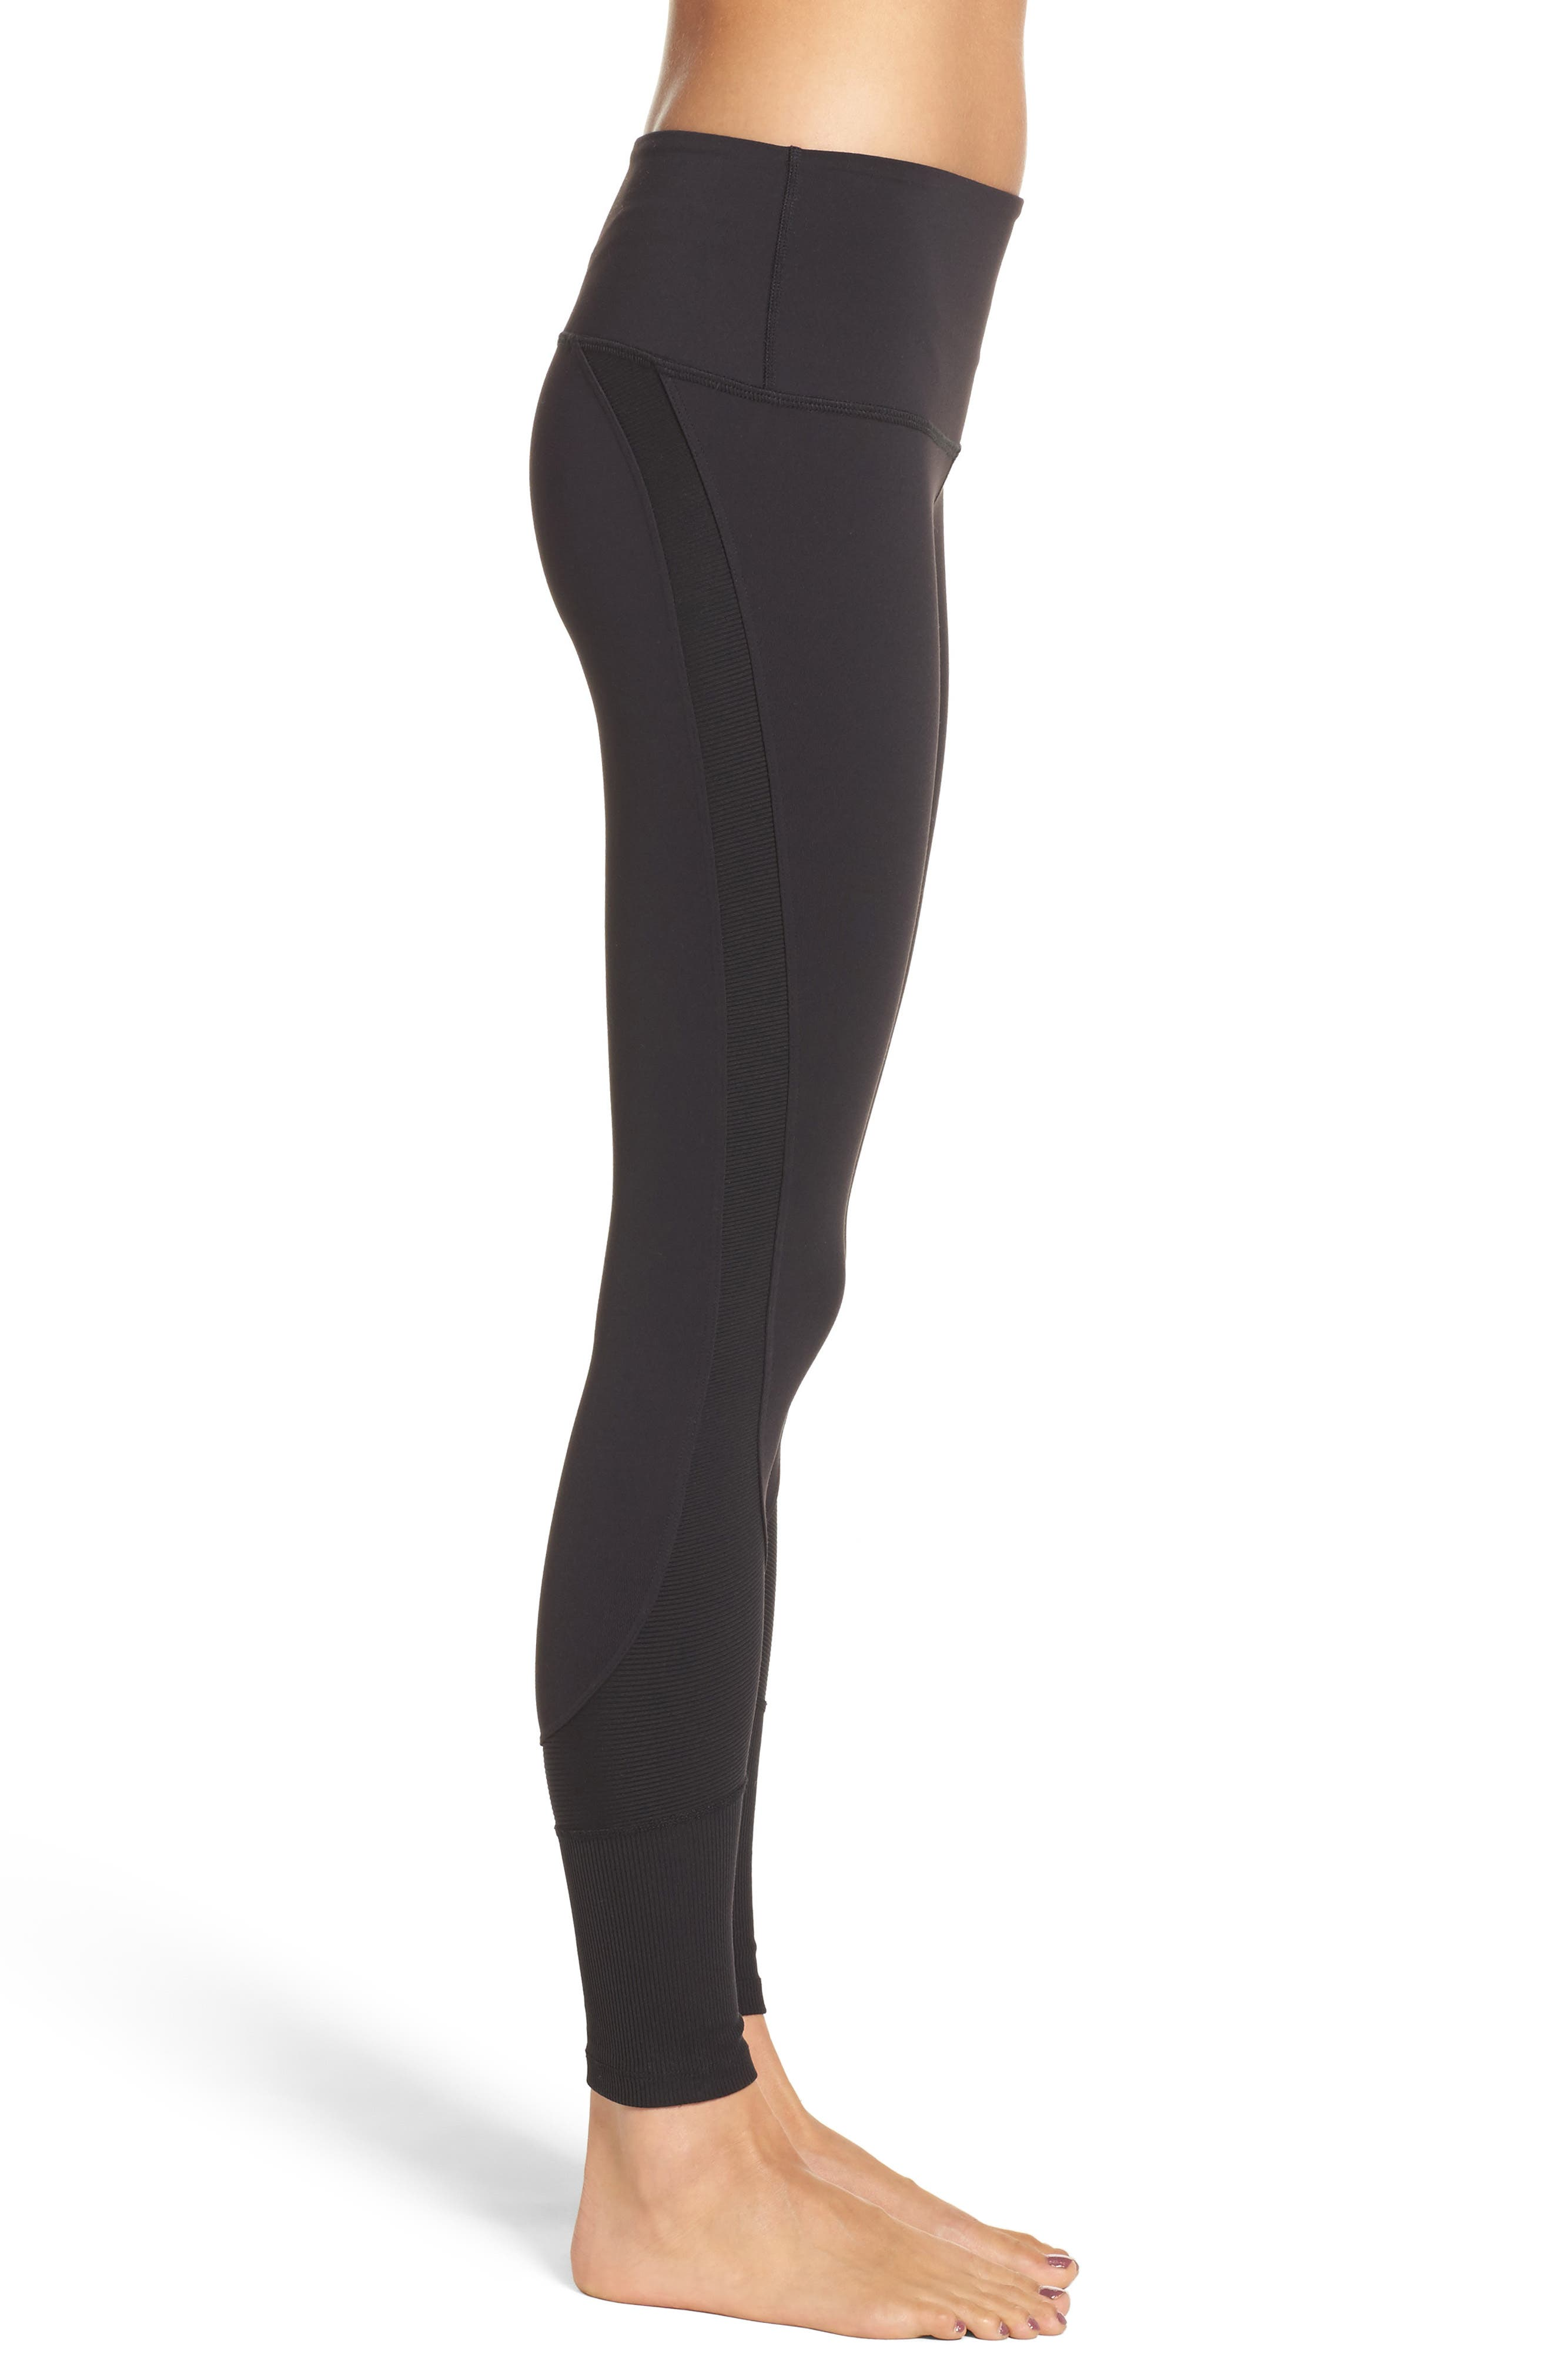 Half Pipe High Waist Tights,                             Alternate thumbnail 3, color,                             001